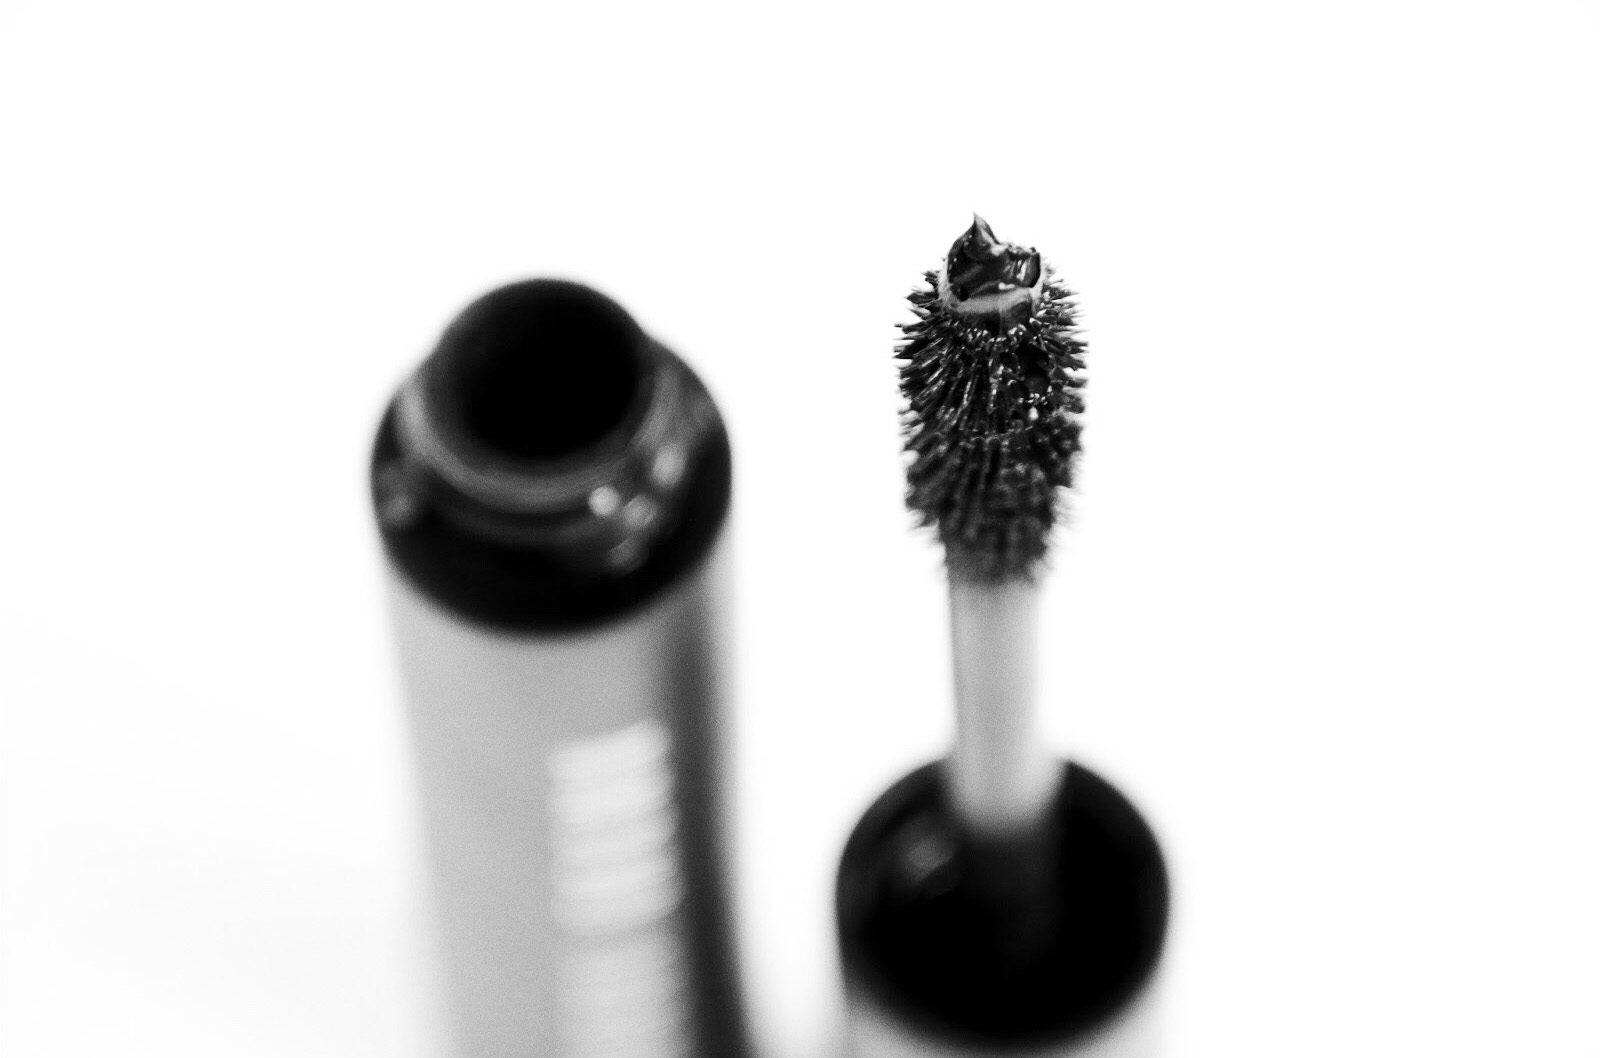 bobbi brown eye opening mascara avis test photos avant après